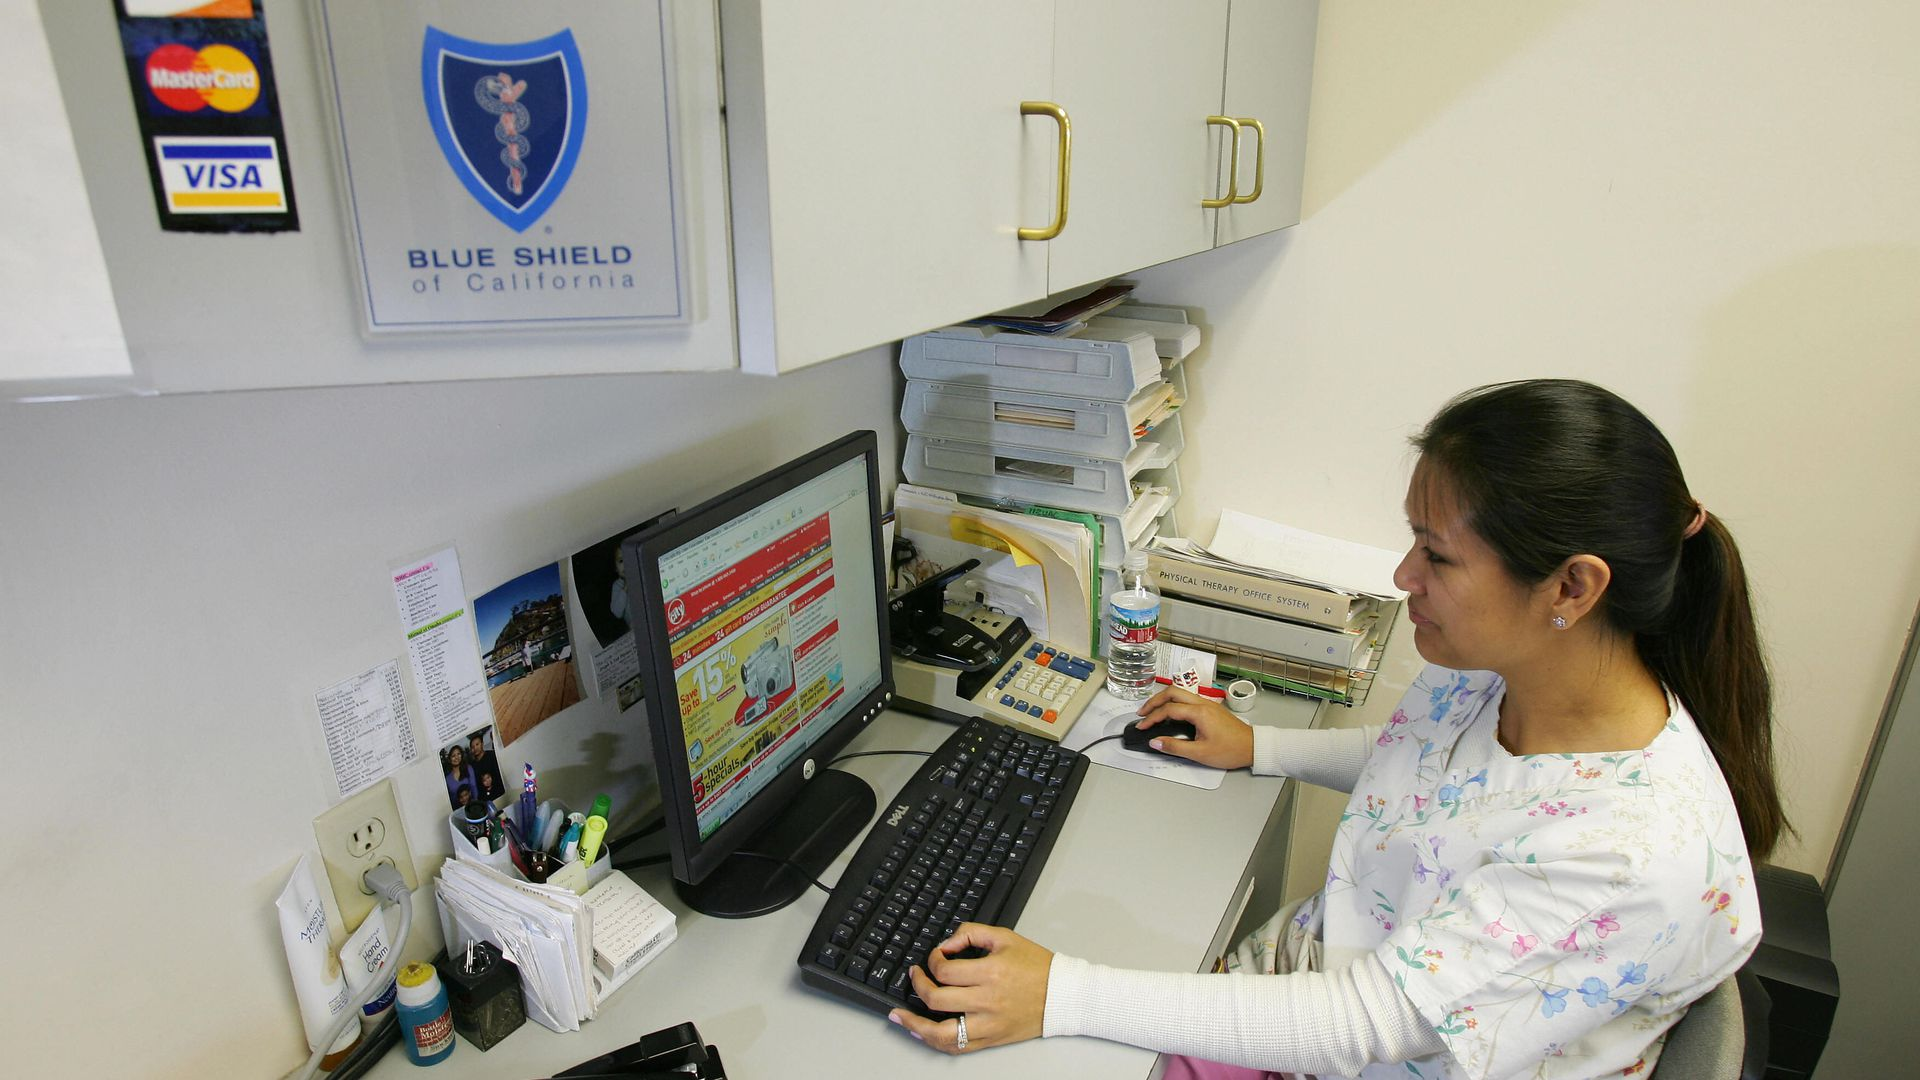 A medical billing specialist sits at her computer